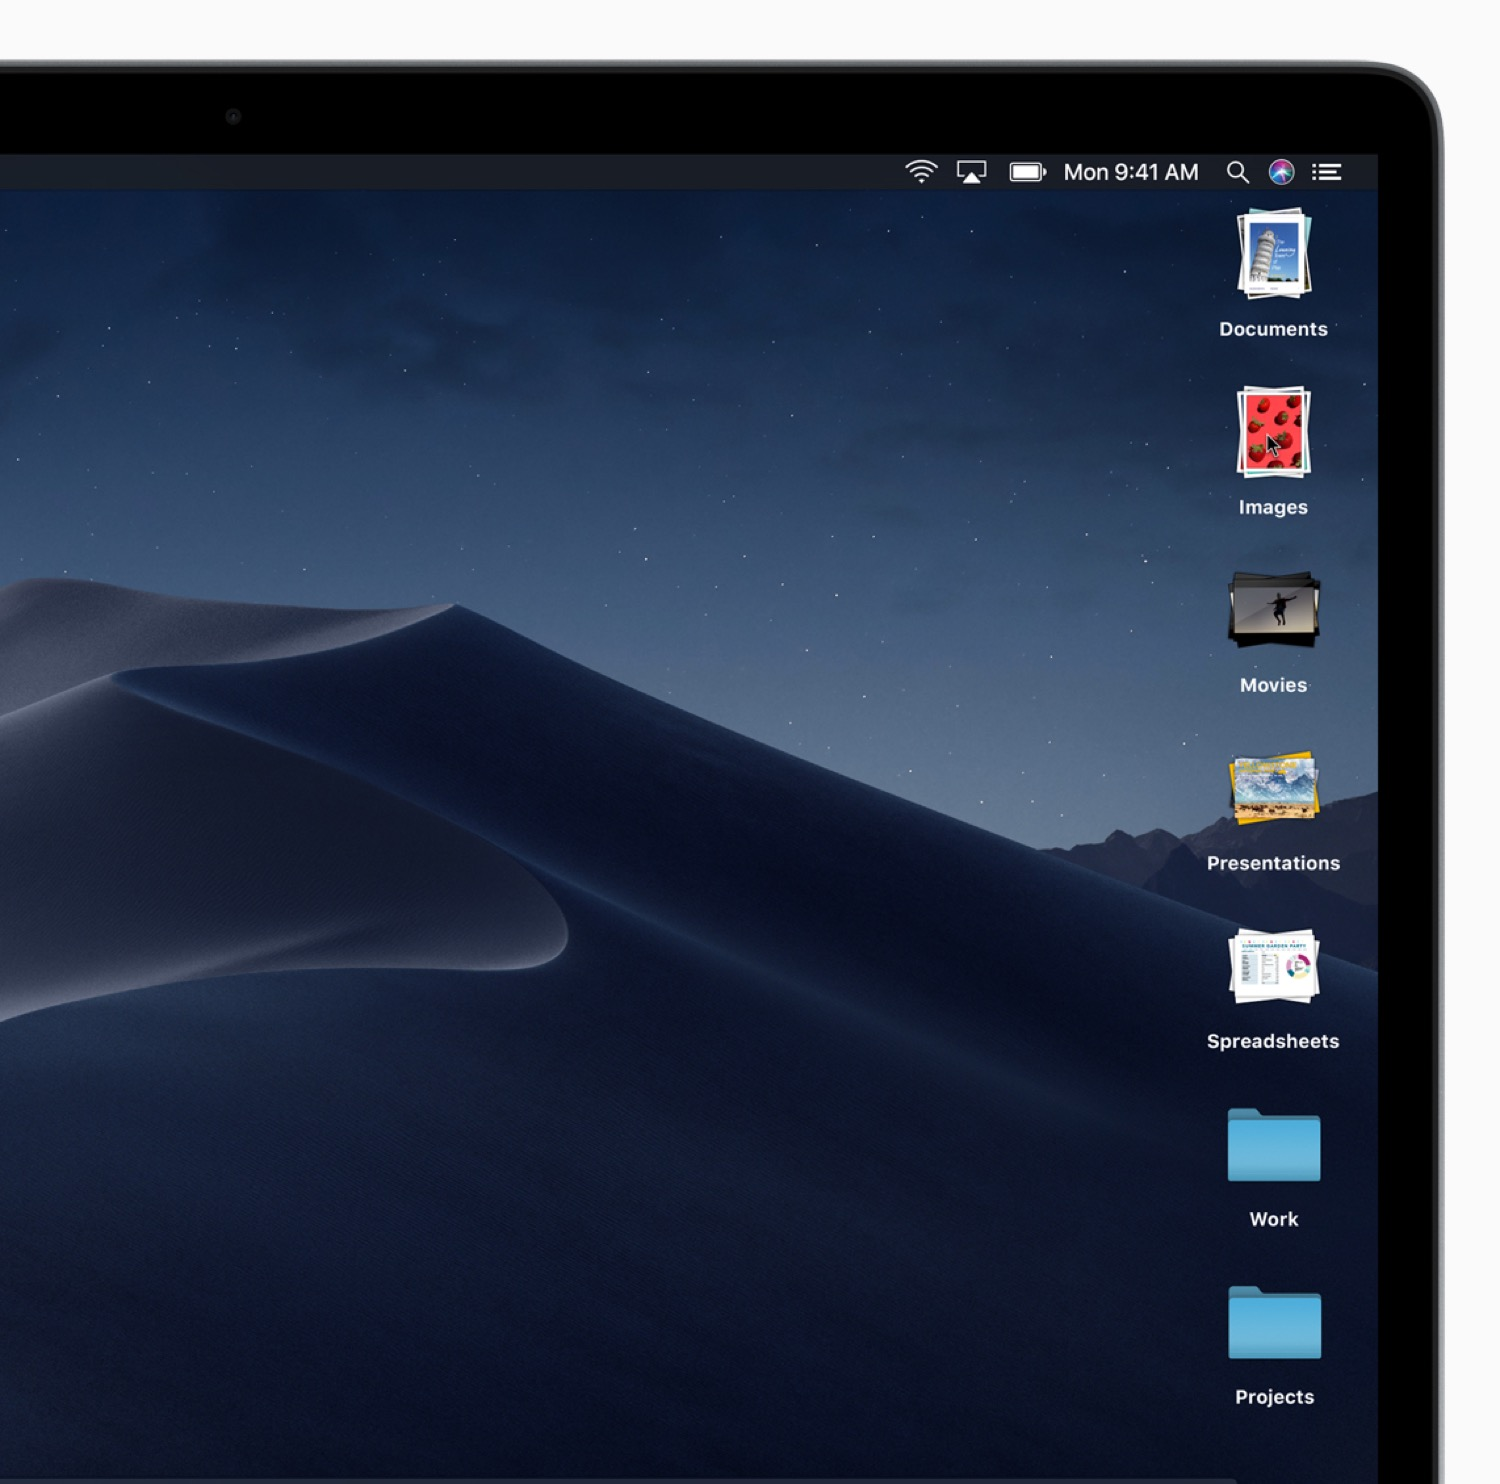 macOS Mojave: New Interface Options, Under the Hood